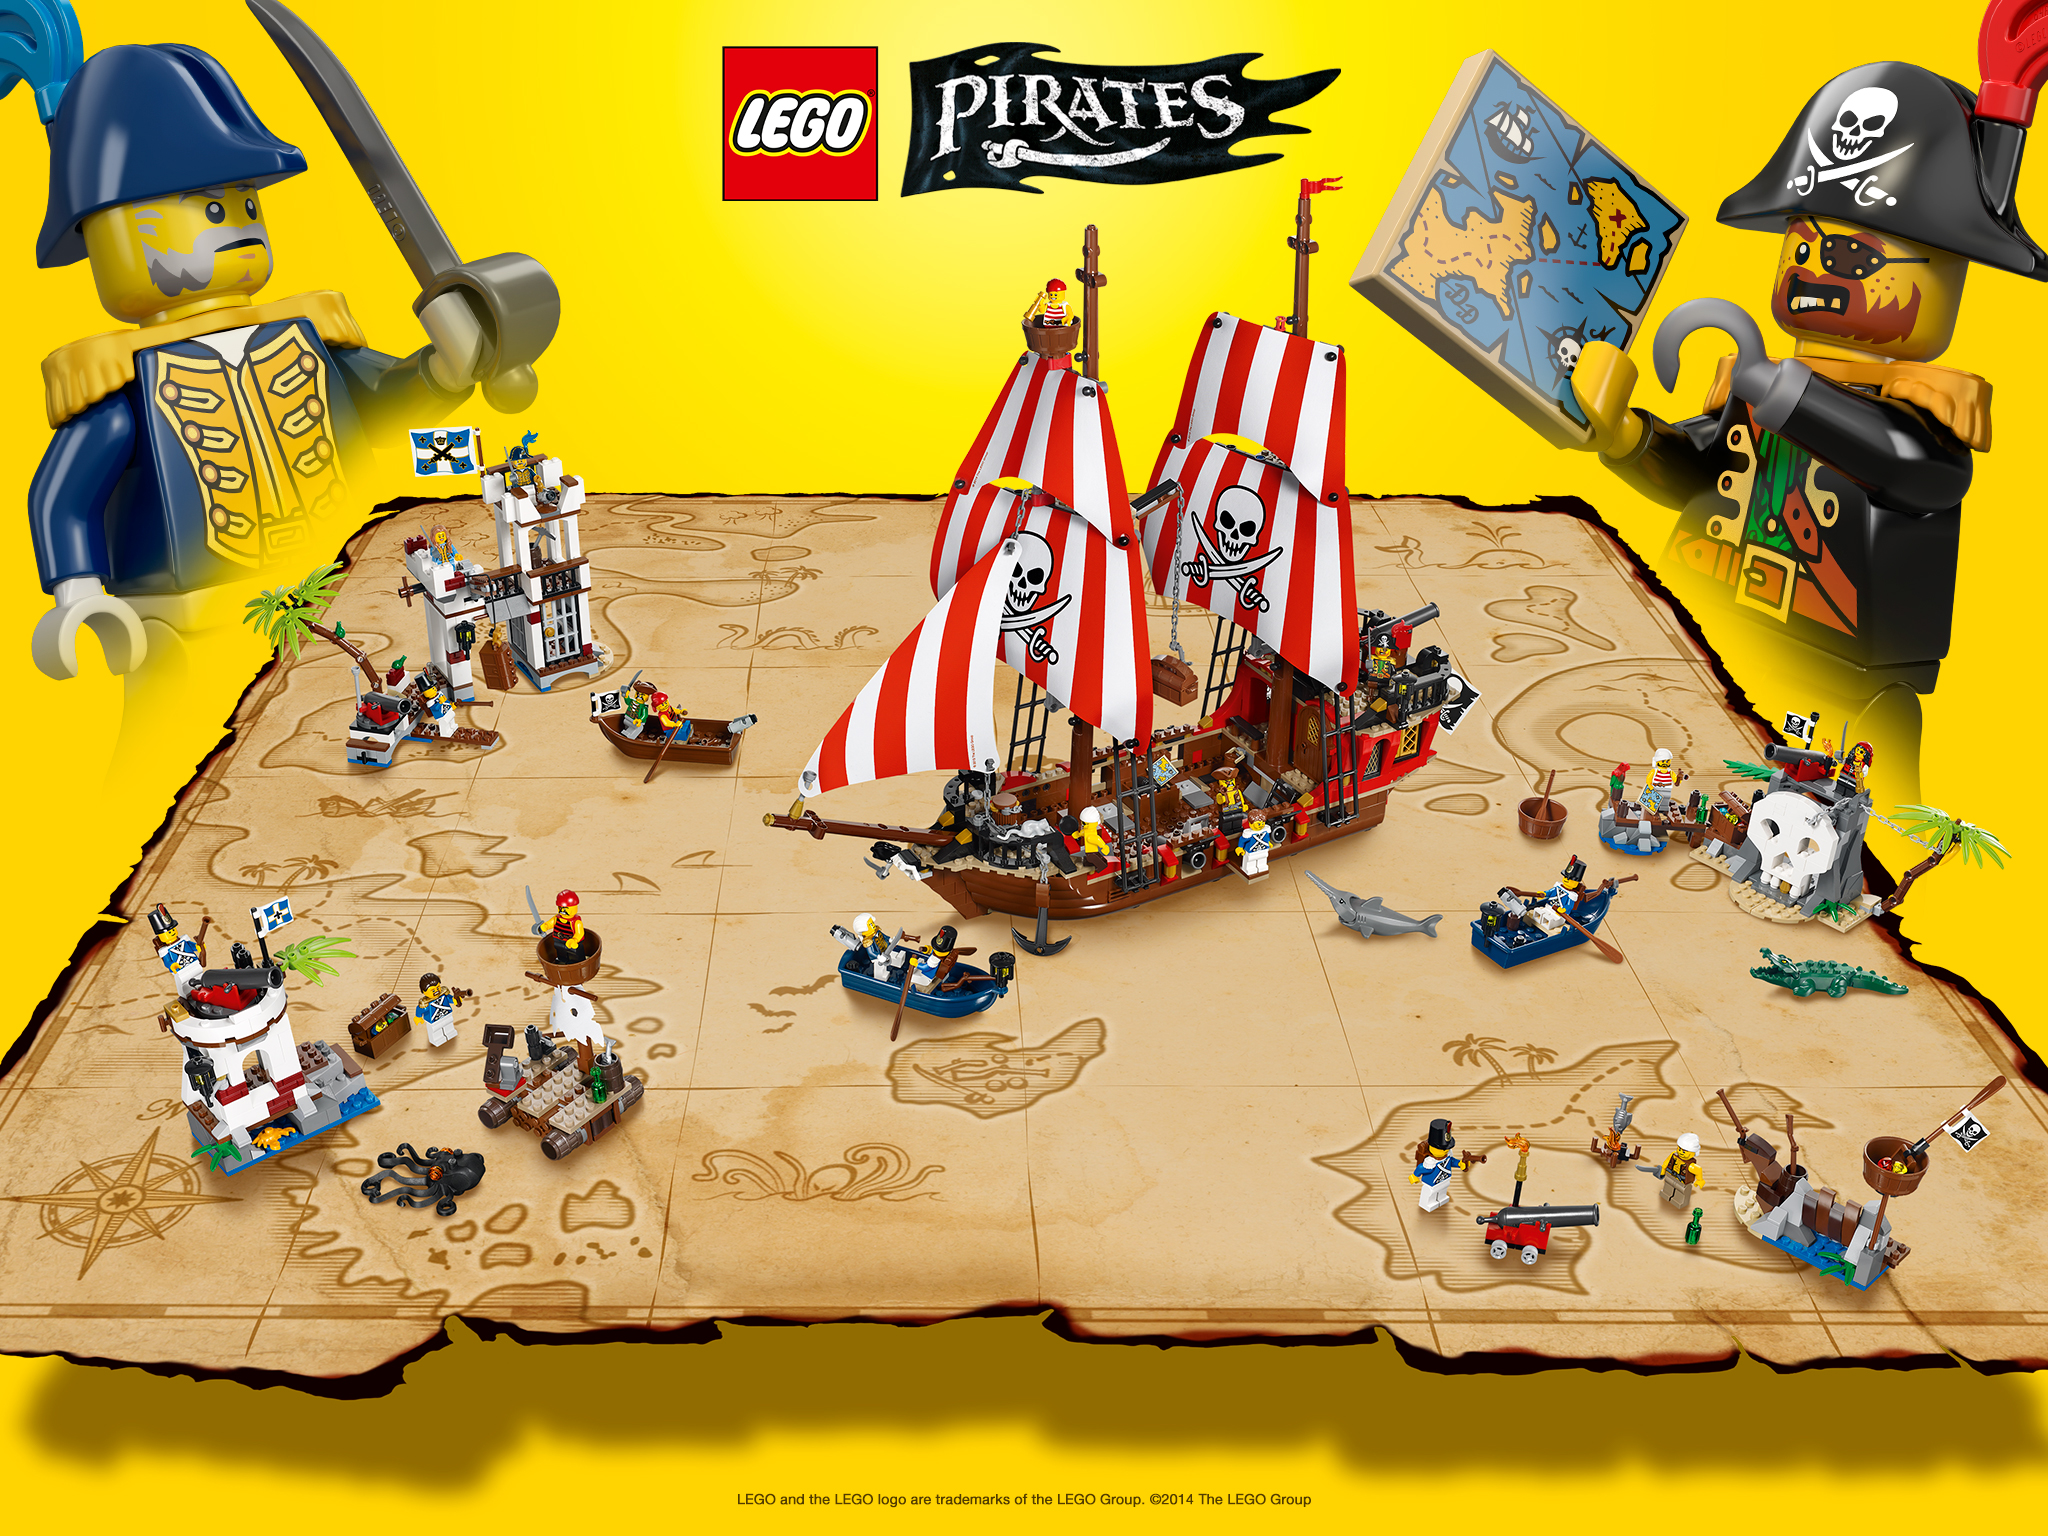 Lego Pirate Map Wallpaper By Thenoblepirate On Deviantart